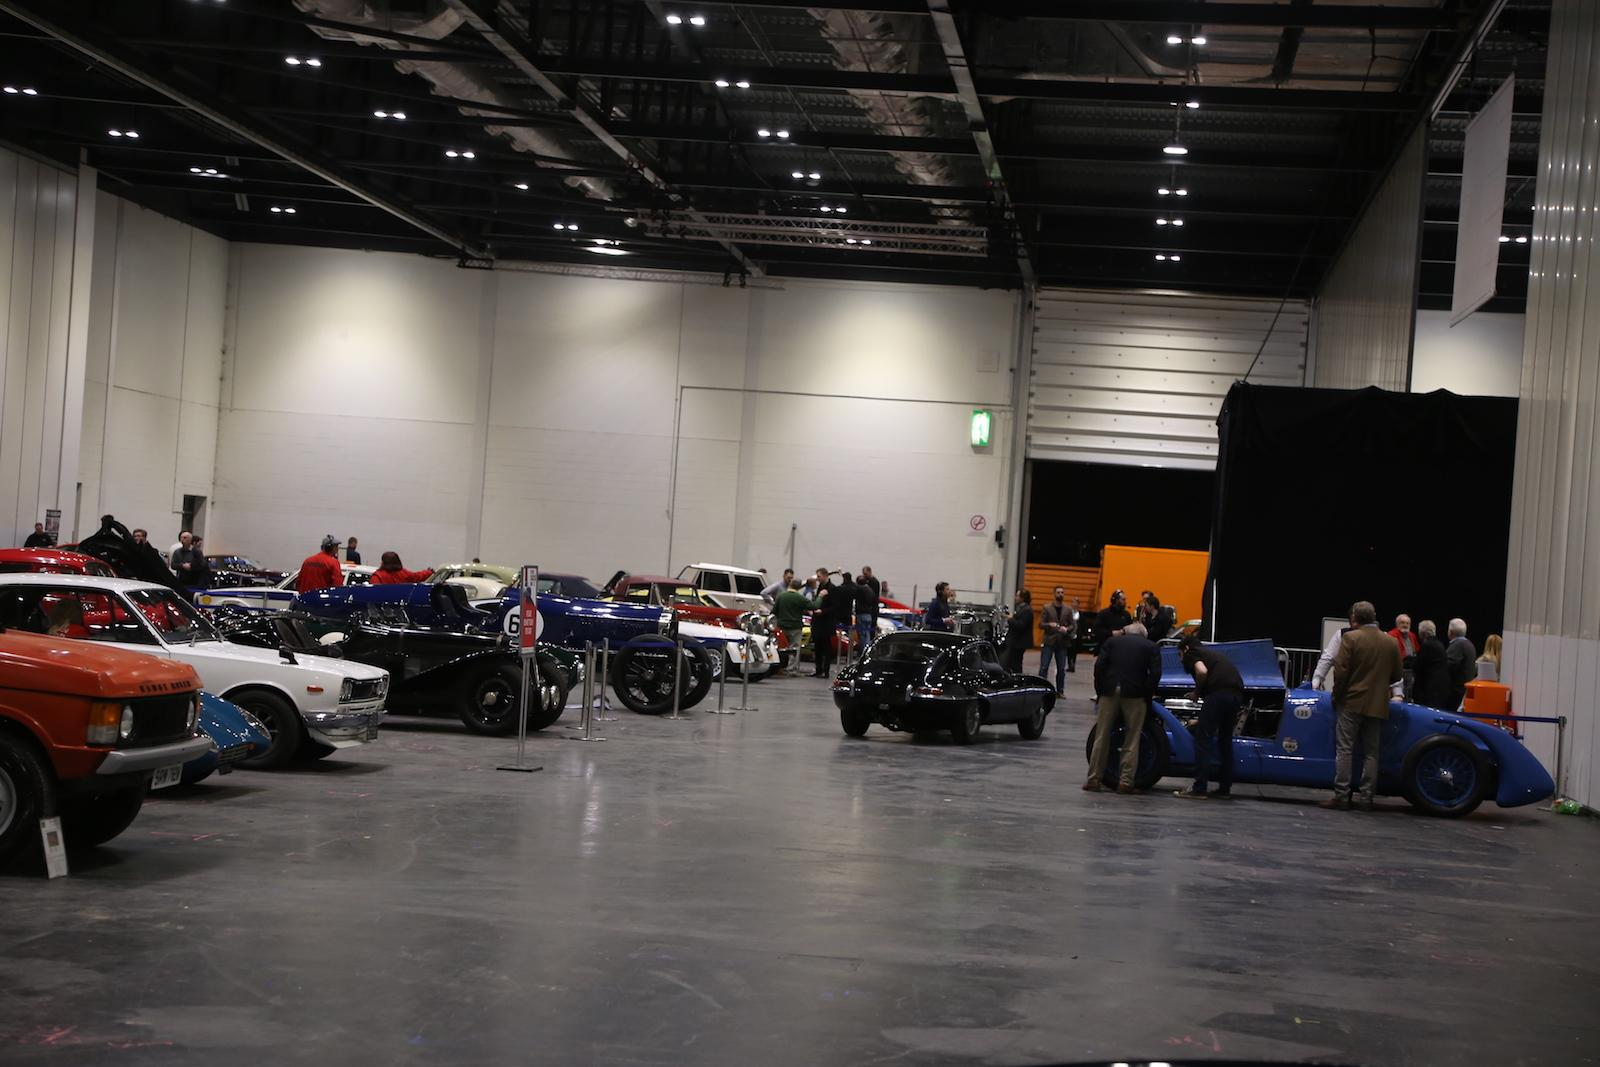 Behind the scenes at the London Classic Car Show